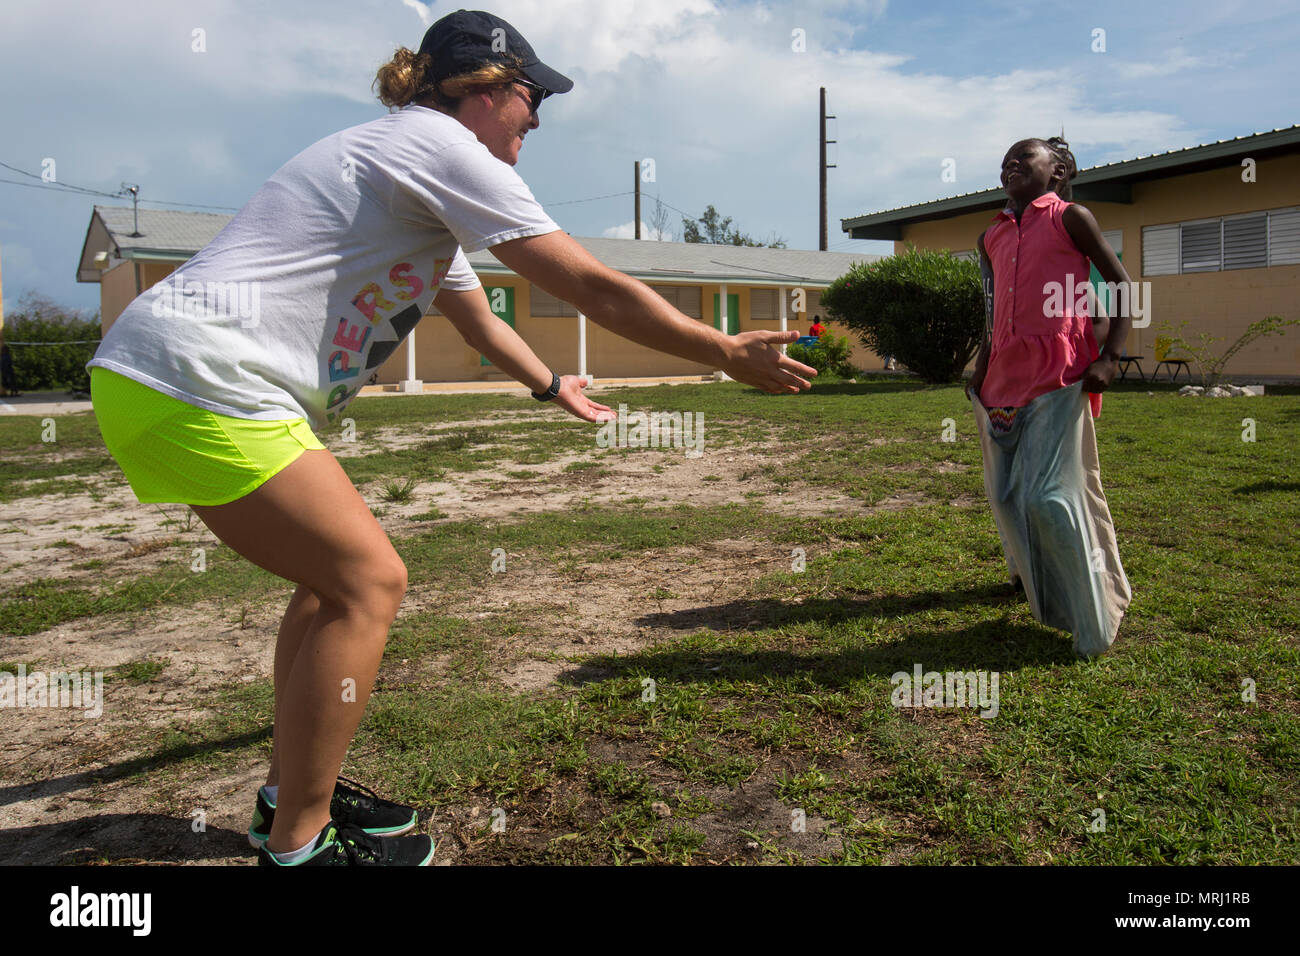 Cpl. Haeli Graham, a wireman with 8th Communications Battalion, judges a sack race at the West End Primary School near Freeport, Bahamas, June 16, 2017. U.S. Marines representing the Marine Headquarters Group and Navy sailors aboard the USS Iwo Jima volunteered their time to restoring the life and color into the school after the community was devastated by the recent Hurricane Matthew. (U.S. Marine Corps photo by Sgt. Michelle Reif.) - Stock Image